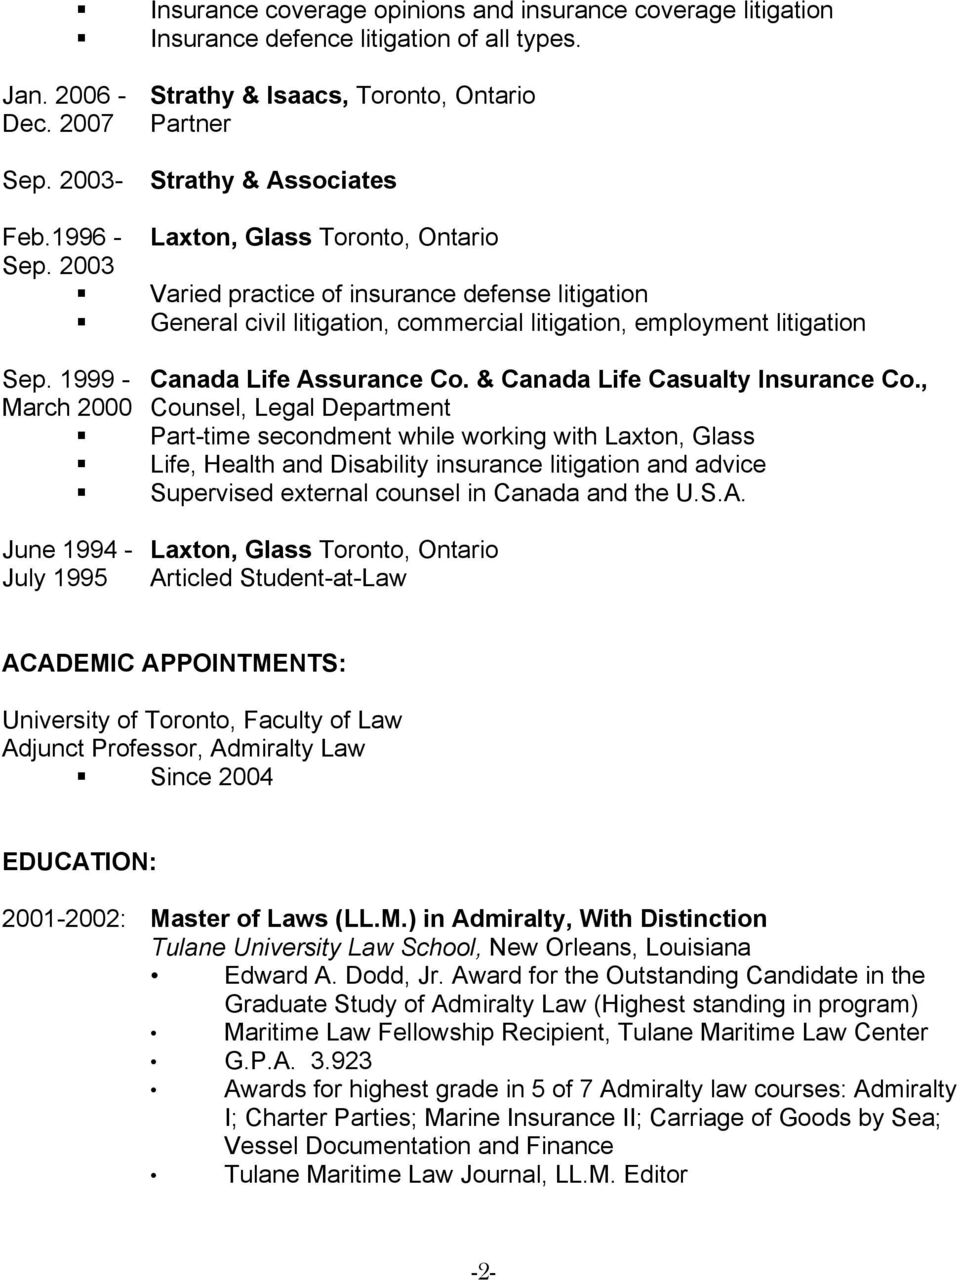 1999 - Canada Life Assurance Co. & Canada Life Casualty Insurance Co.